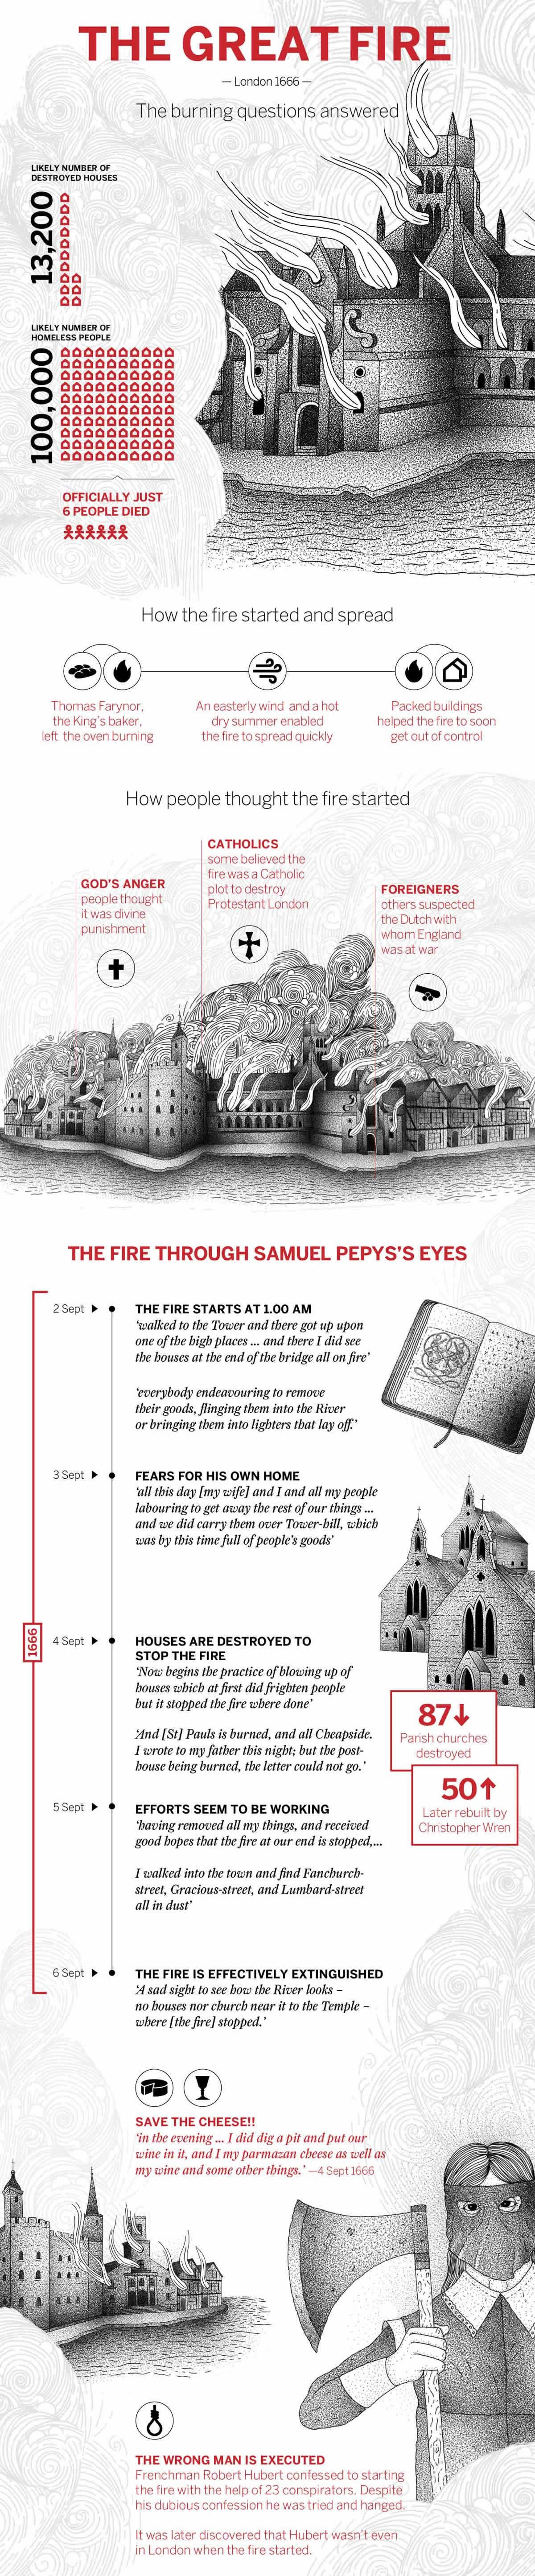 The Great Fire In Numbers